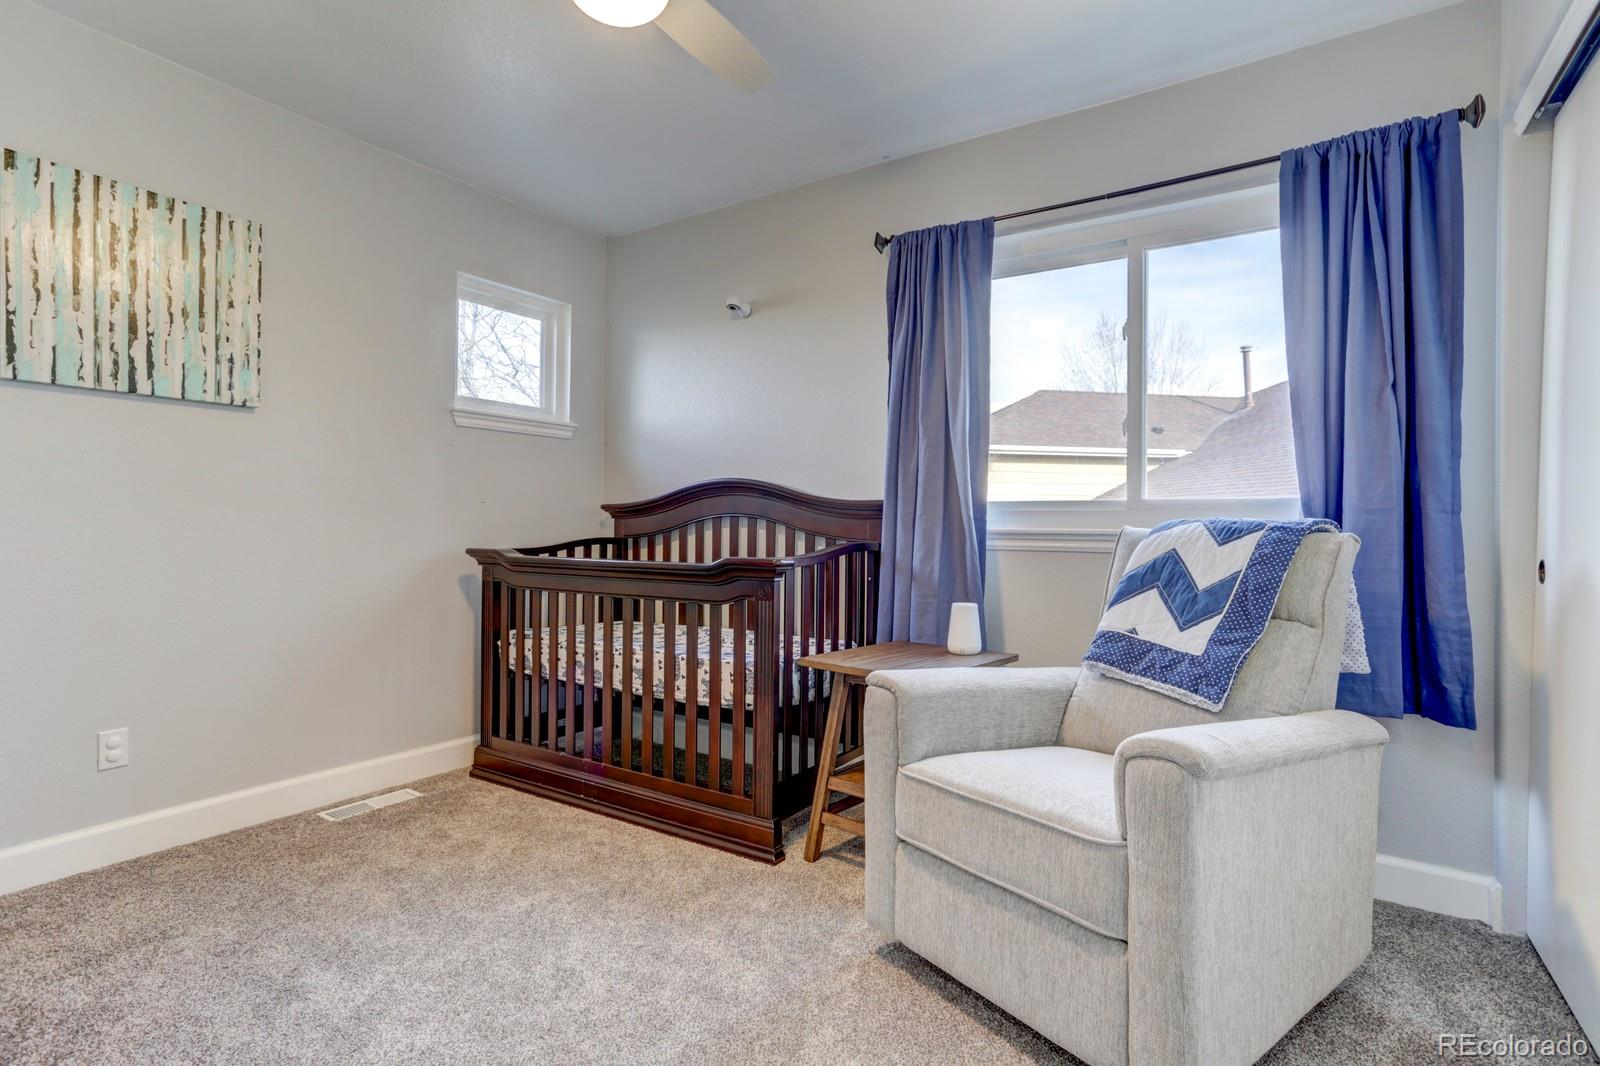 MLS# 3110413 - 23 - 9489 Wolfe Court, Highlands Ranch, CO 80129